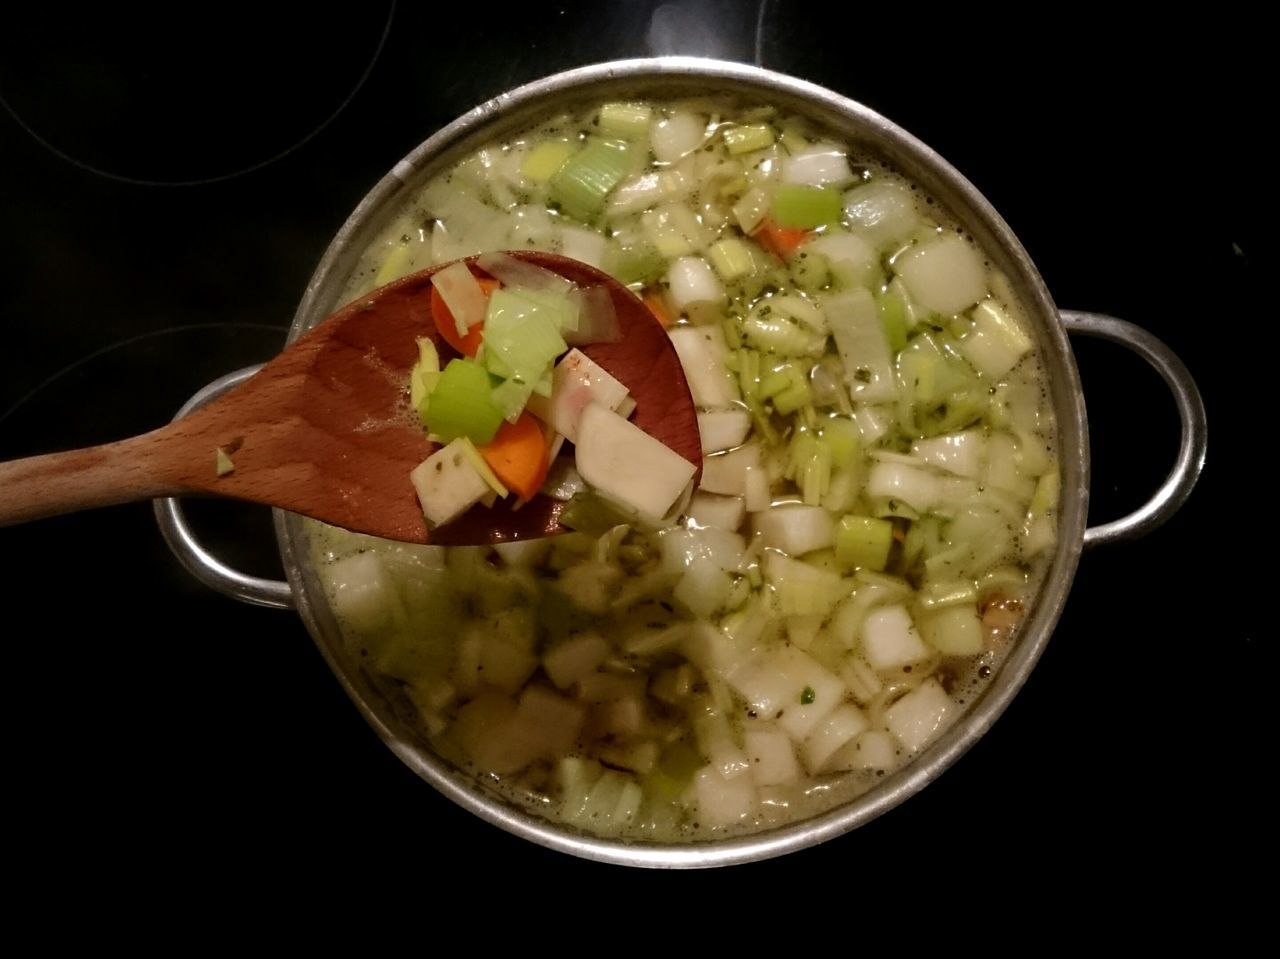 Soup Vegetable German Food Healthy Food Hearty Soup Food And Drink Healthy Eating Indoors  Freshness Food No People Black Background Ready-to-eat Close-up Day